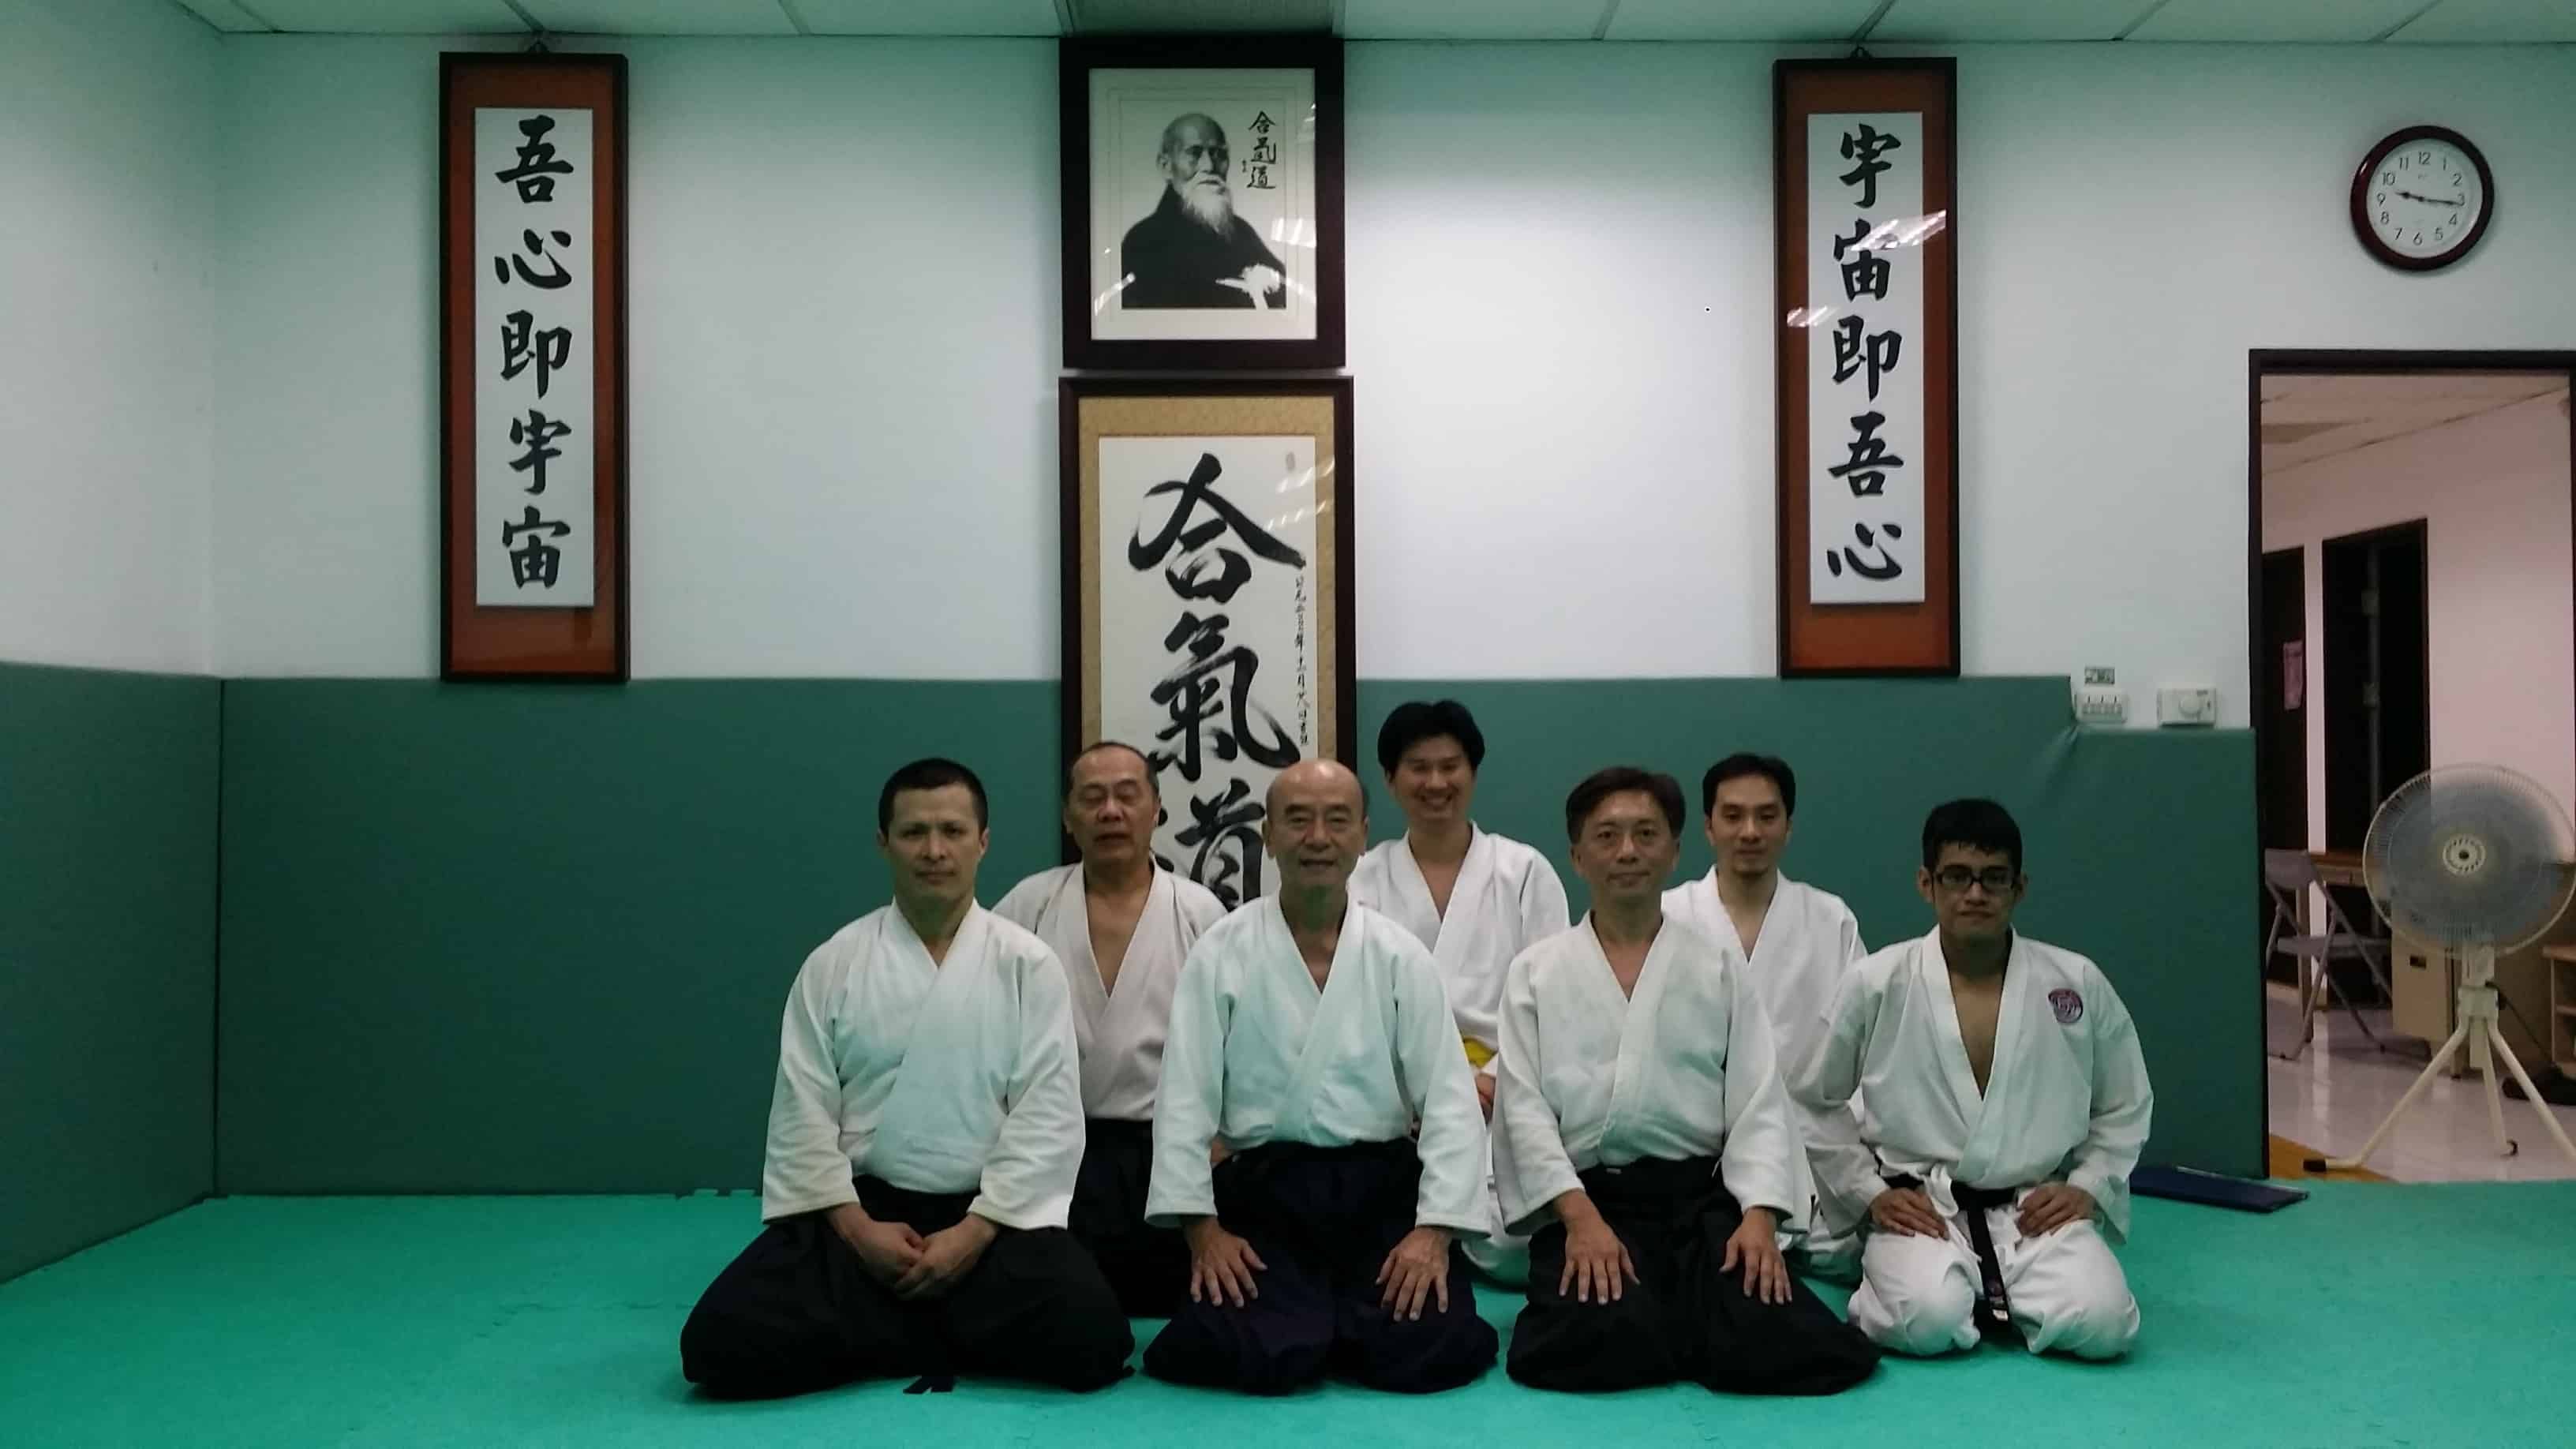 Training at Da-An Aikido in Taipei, Taiwan